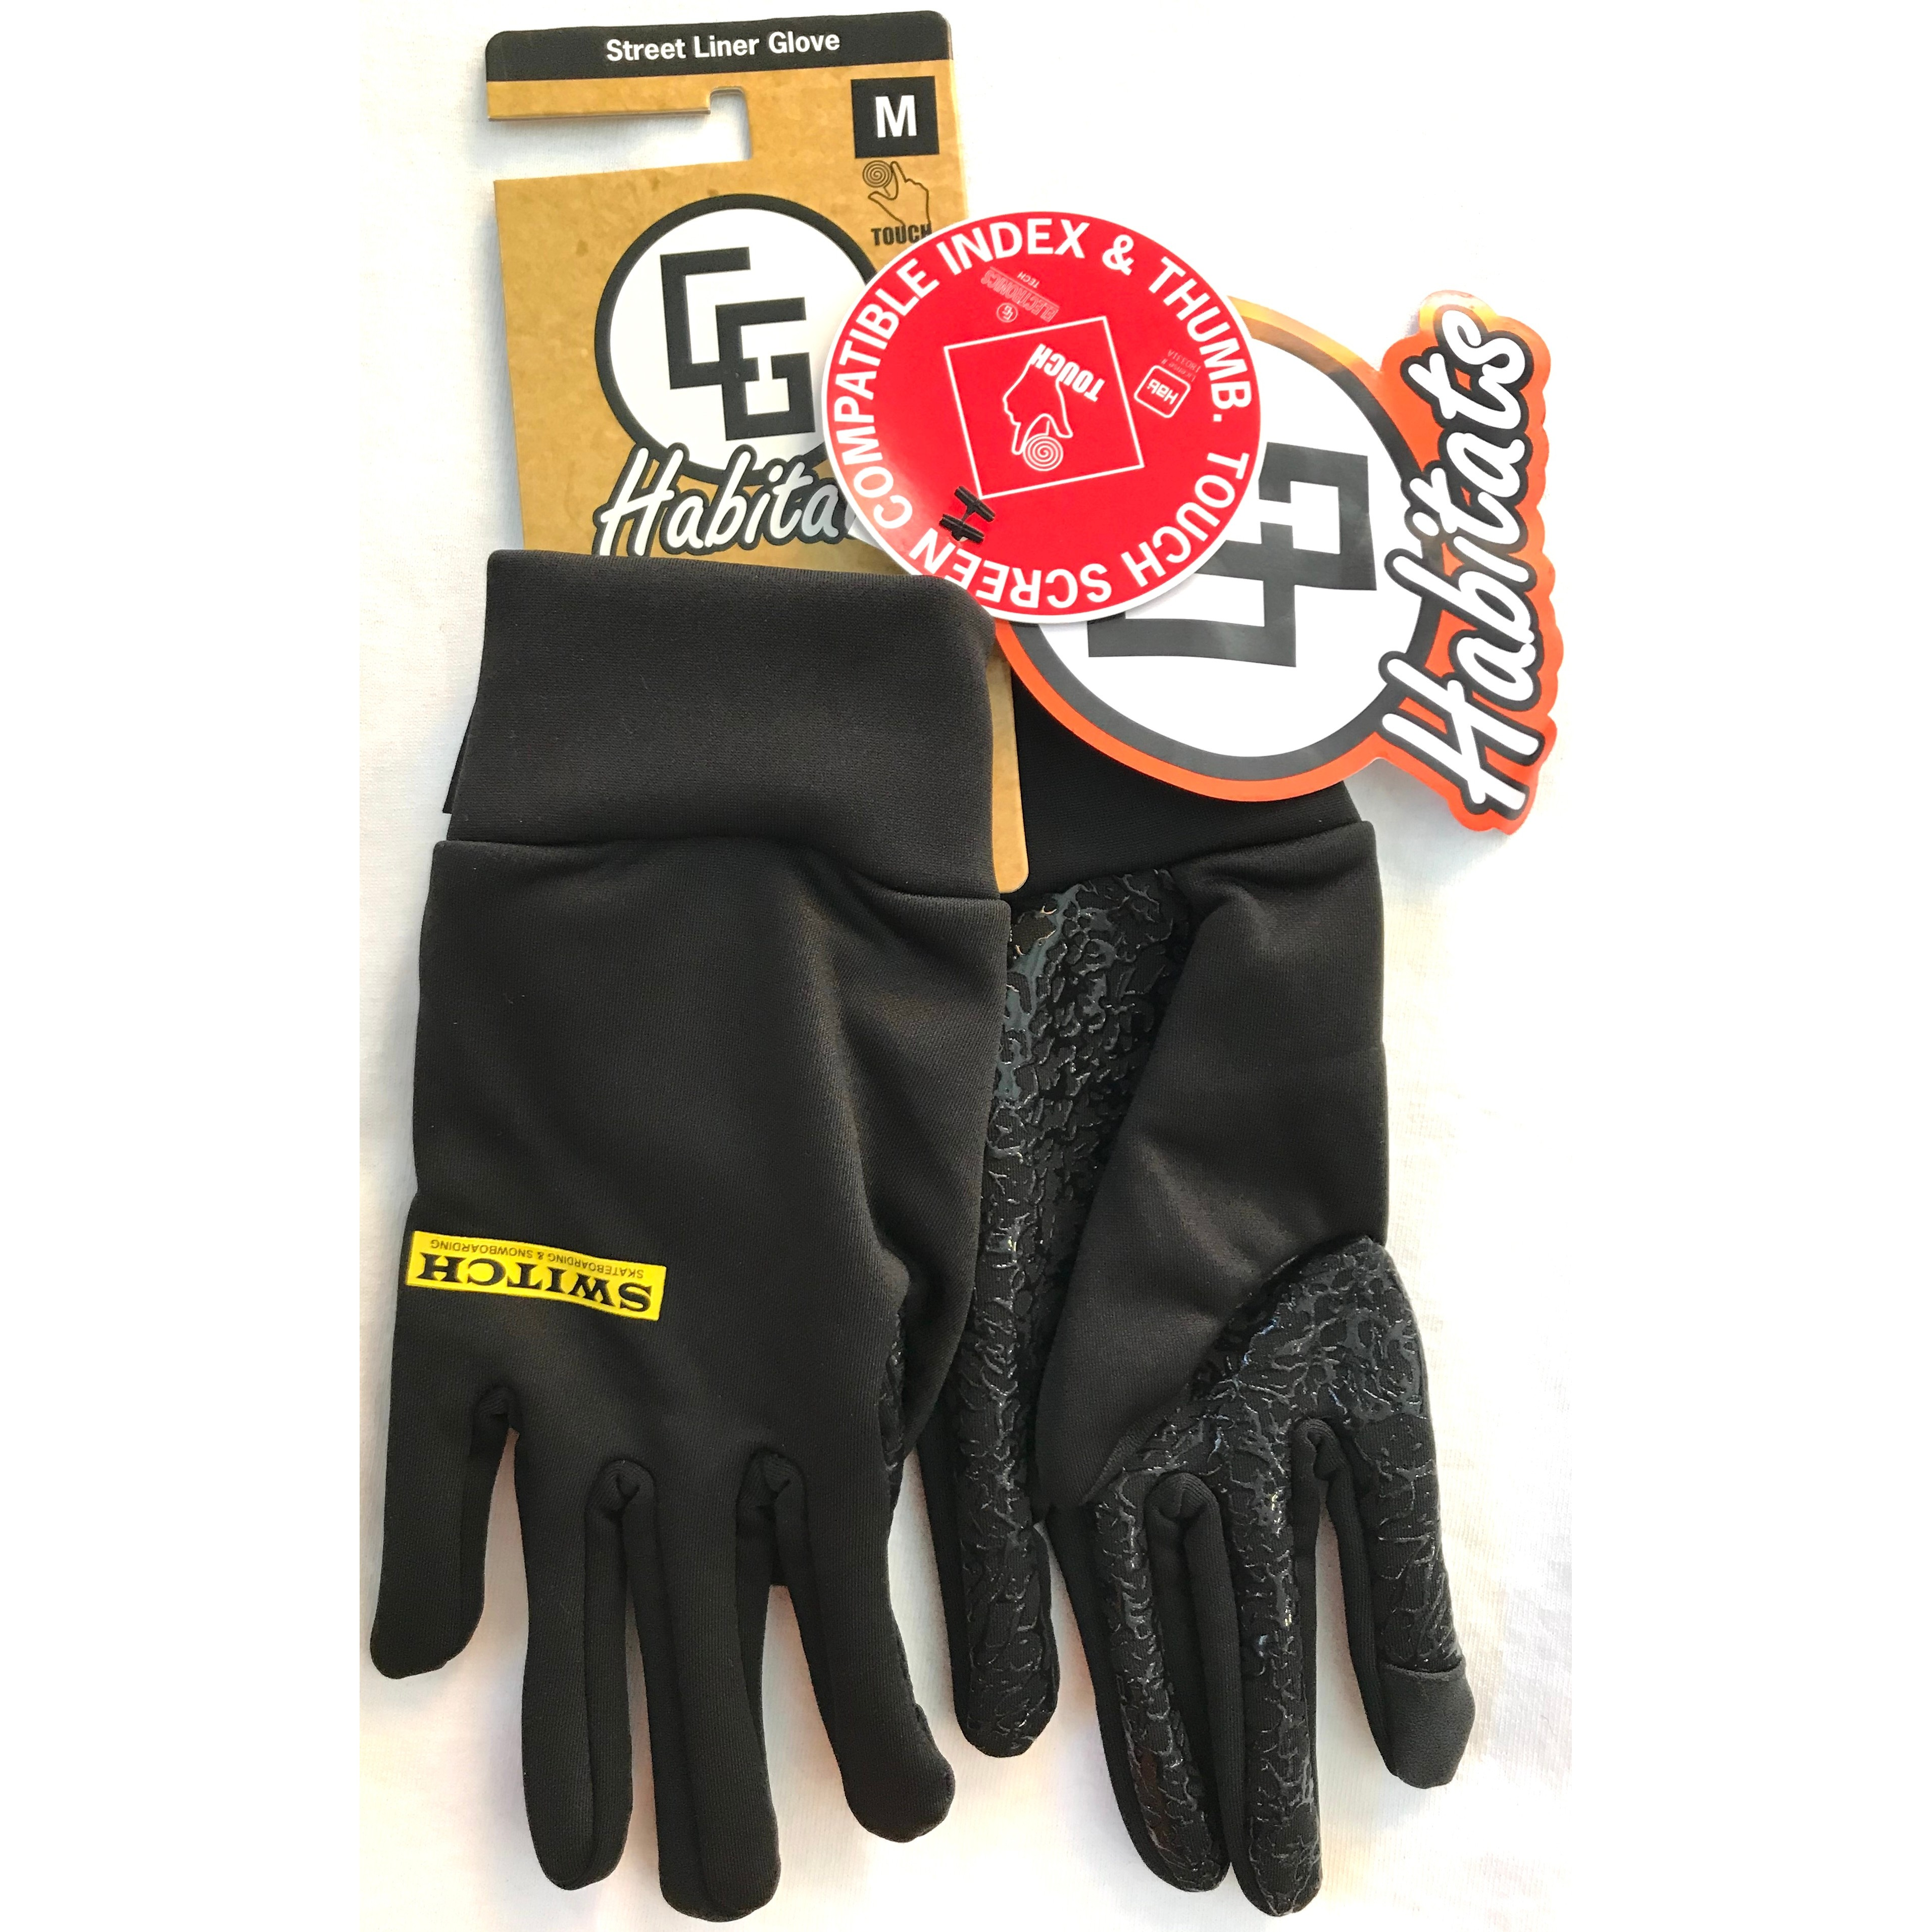 Switch Skateboarding Switch X CandyGrind Street Liner Glove (Black)